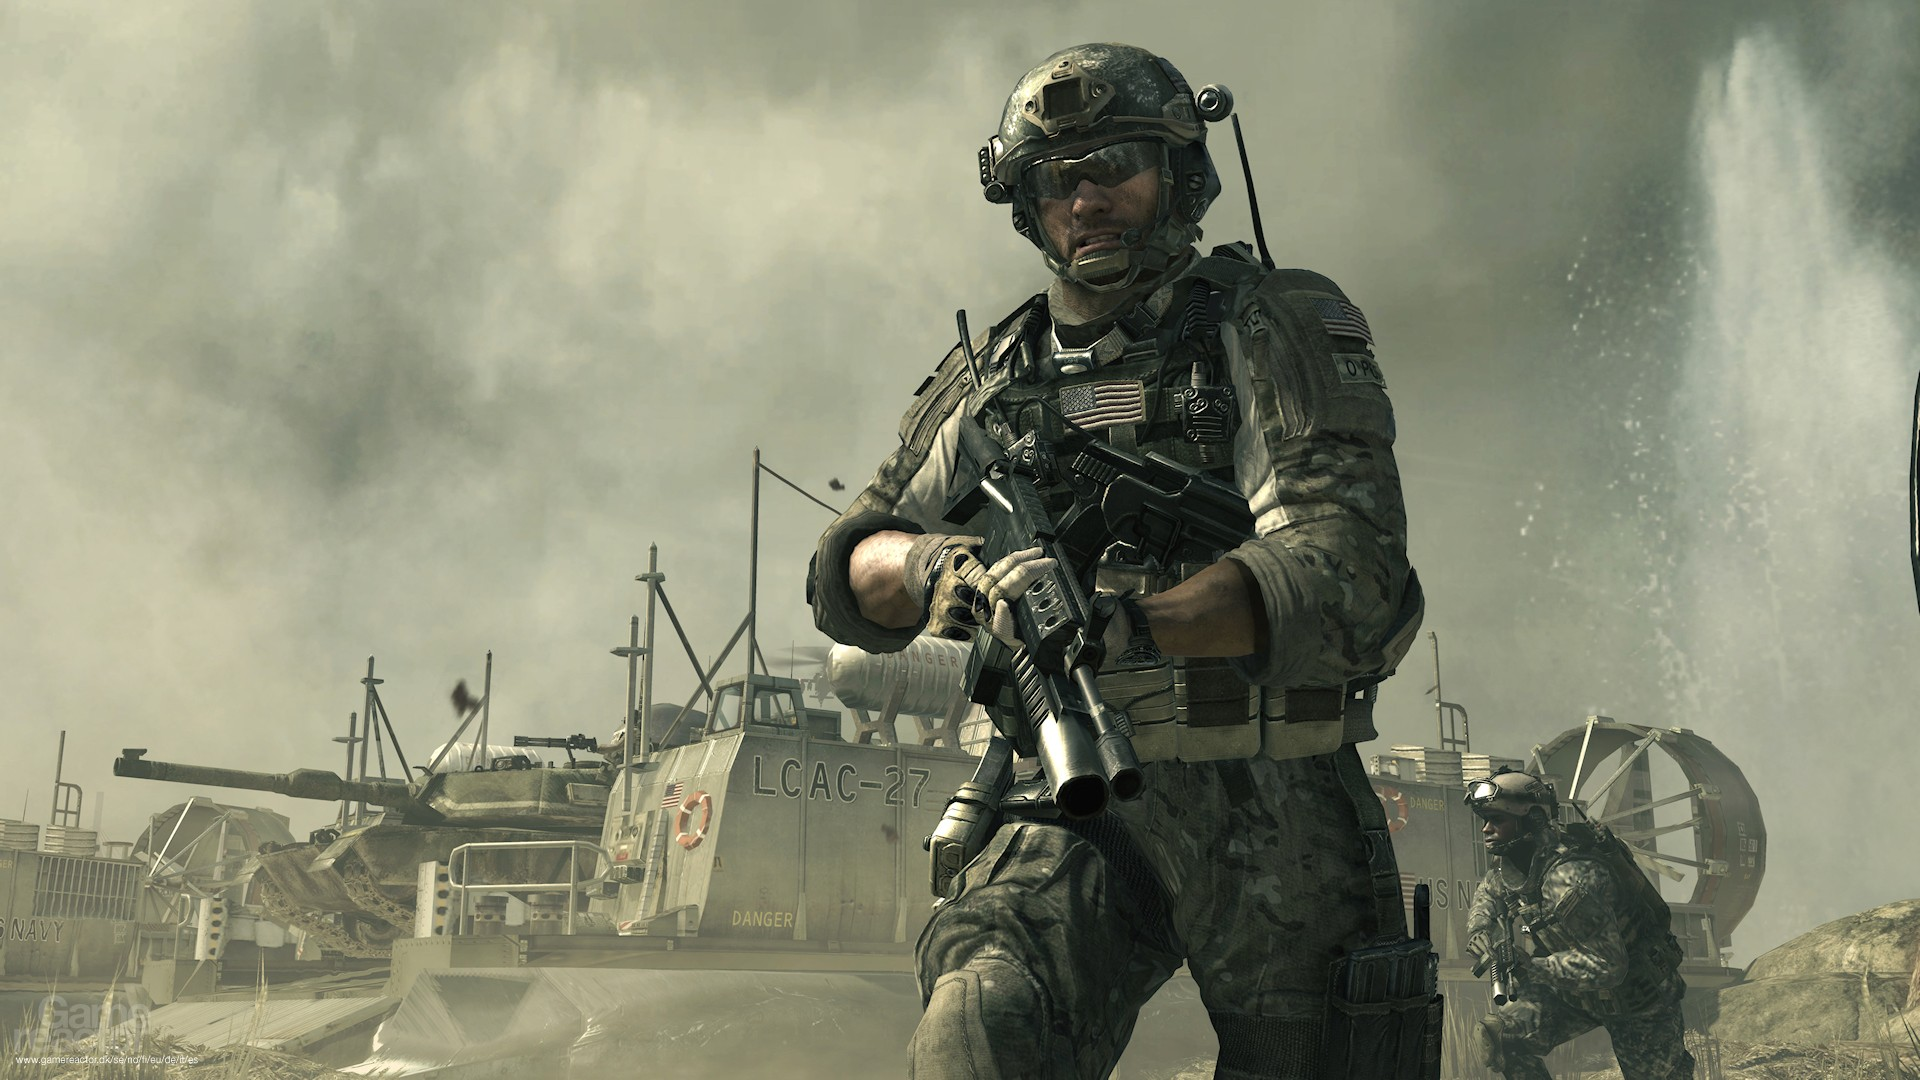 Pictures of Rumour: Call of Duty Modern Warfare 4 has battle royale 1/1